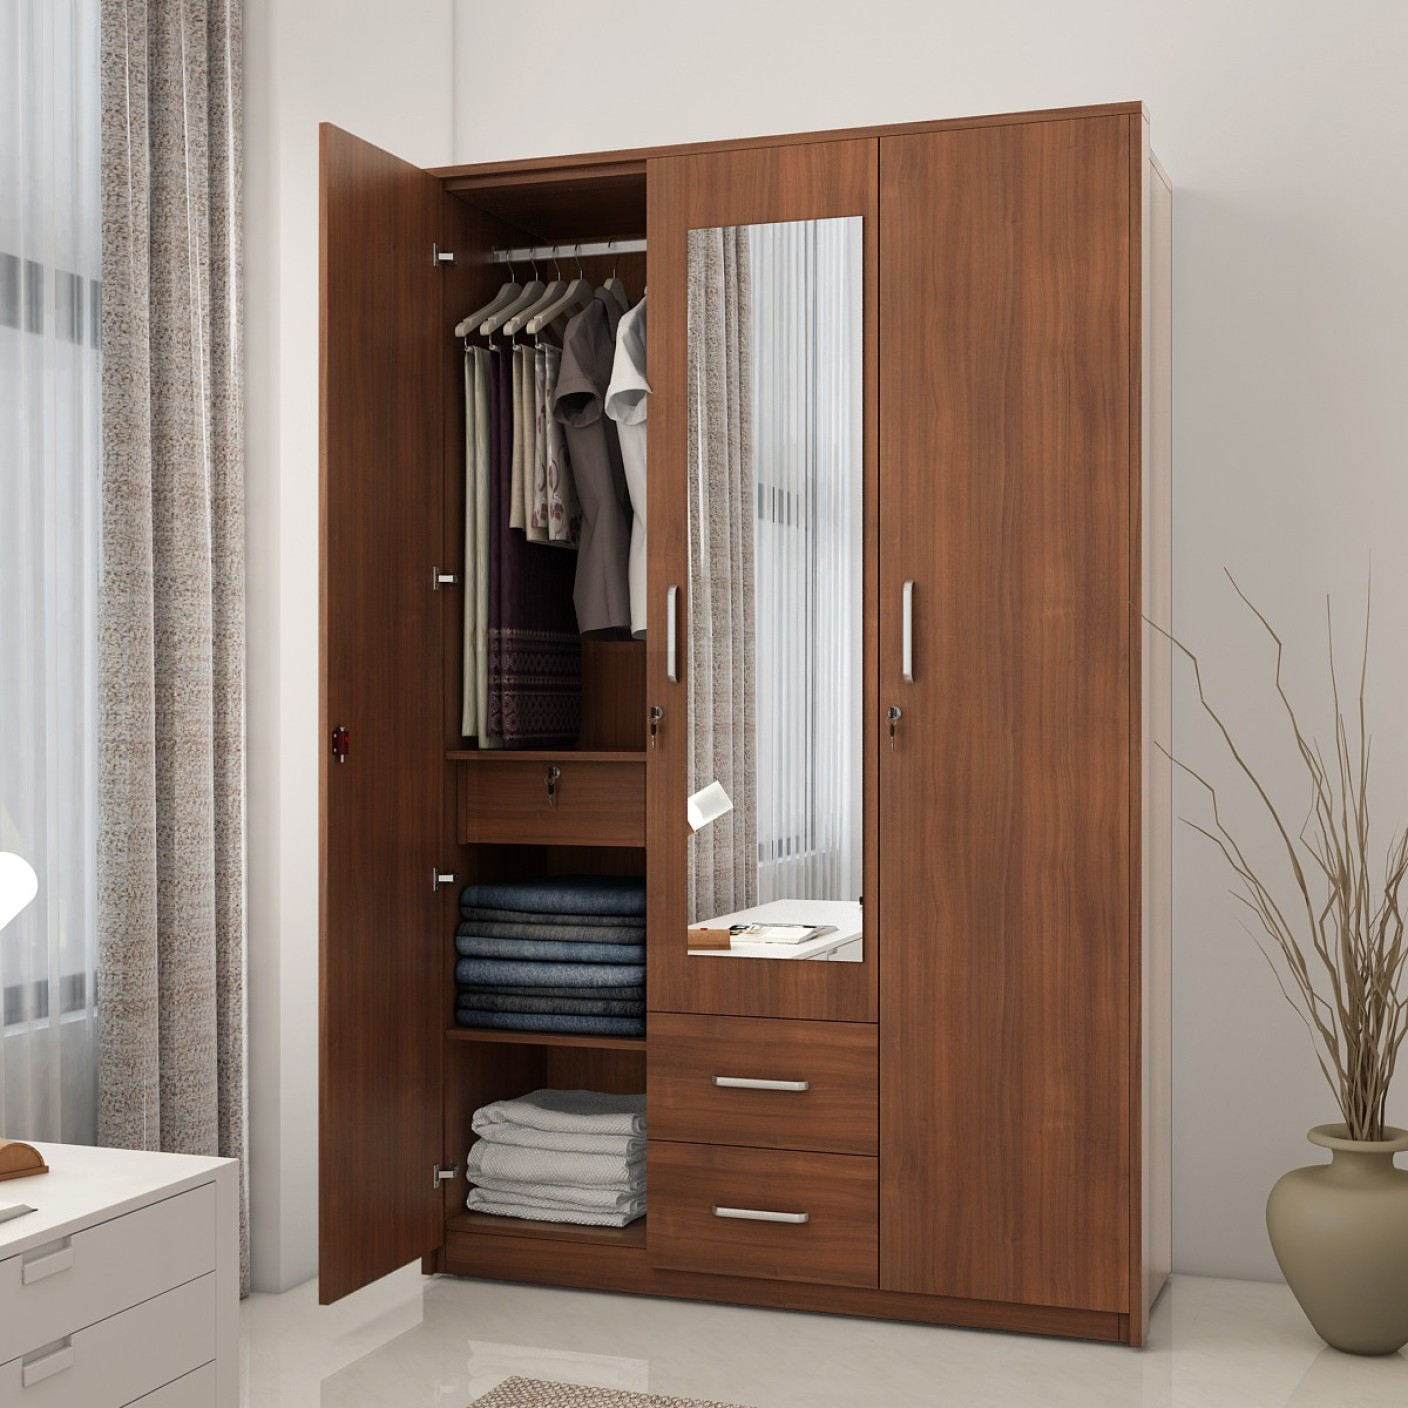 Online shopping india buy mobiles electronics for 1 door wardrobe with shelves